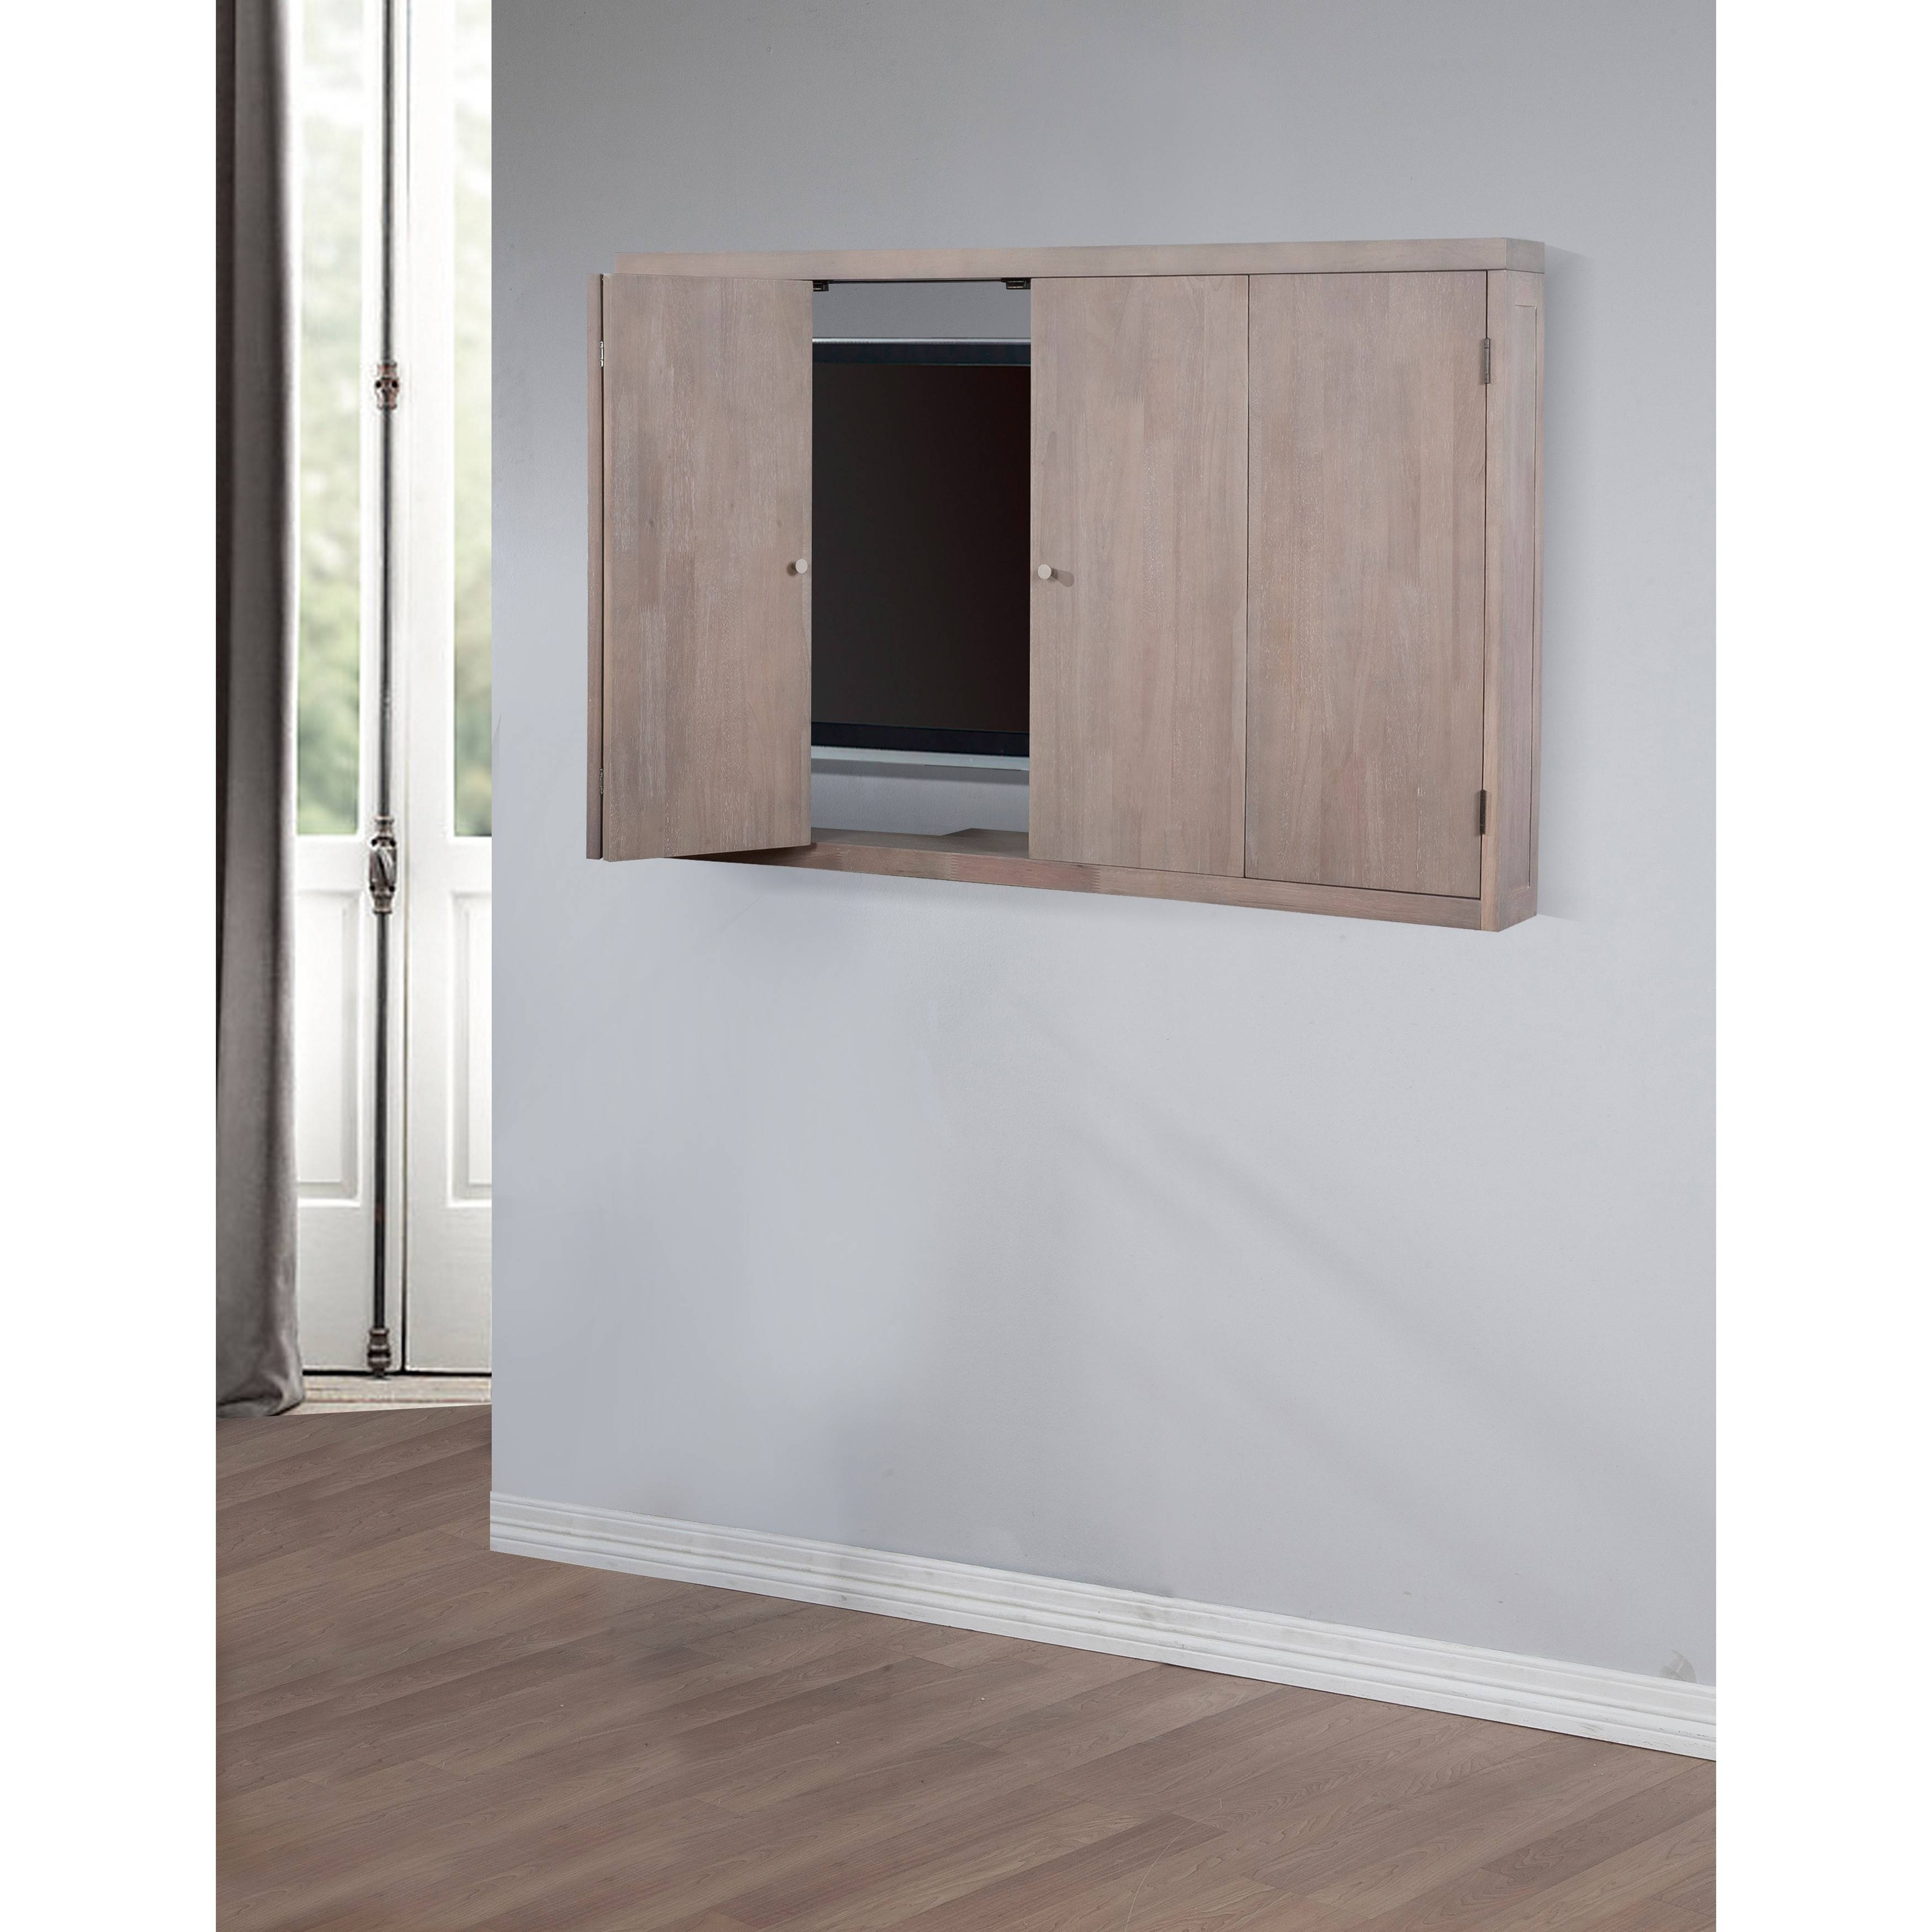 Flat Screen Tv Cabinets With Doors Wall Mount Home Design Ideas